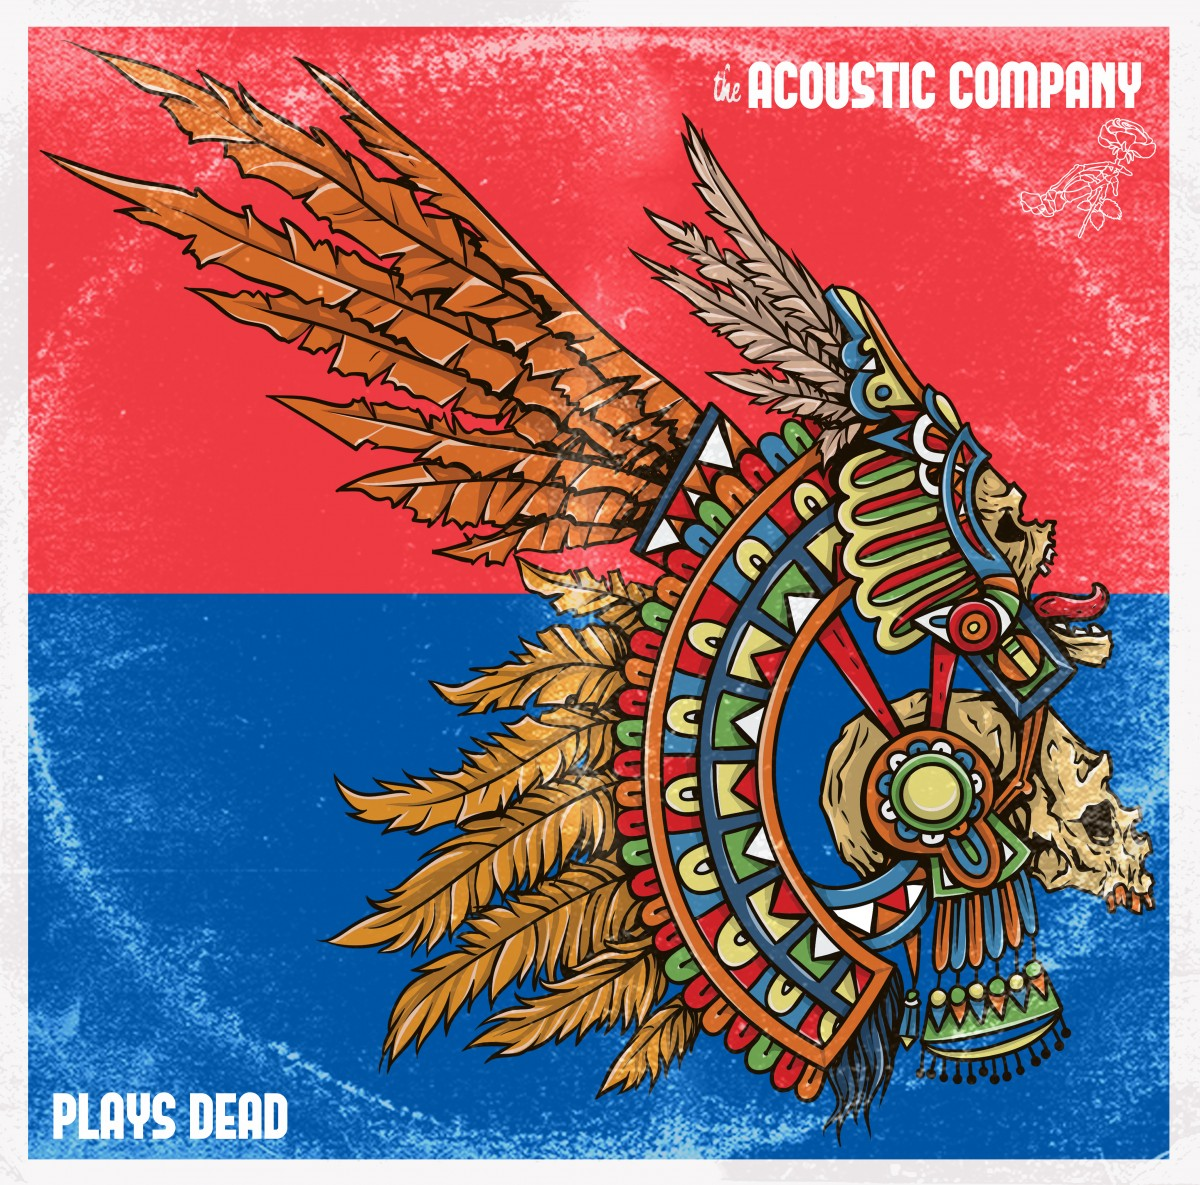 Album Review: The Acoustic Company, Plays Dead